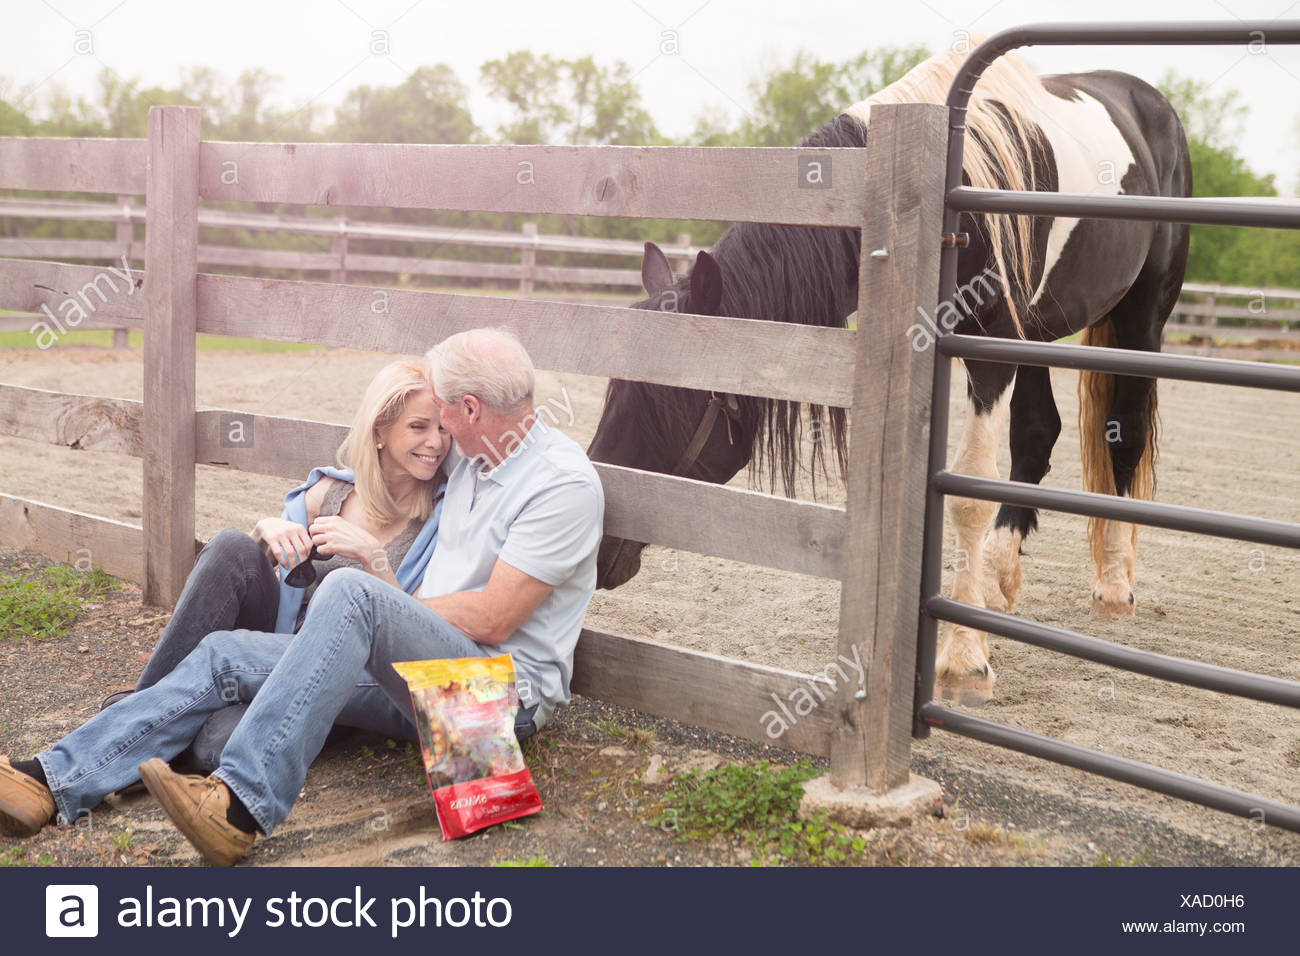 Mature couple sitting against fence and a curious horse - Stock Image